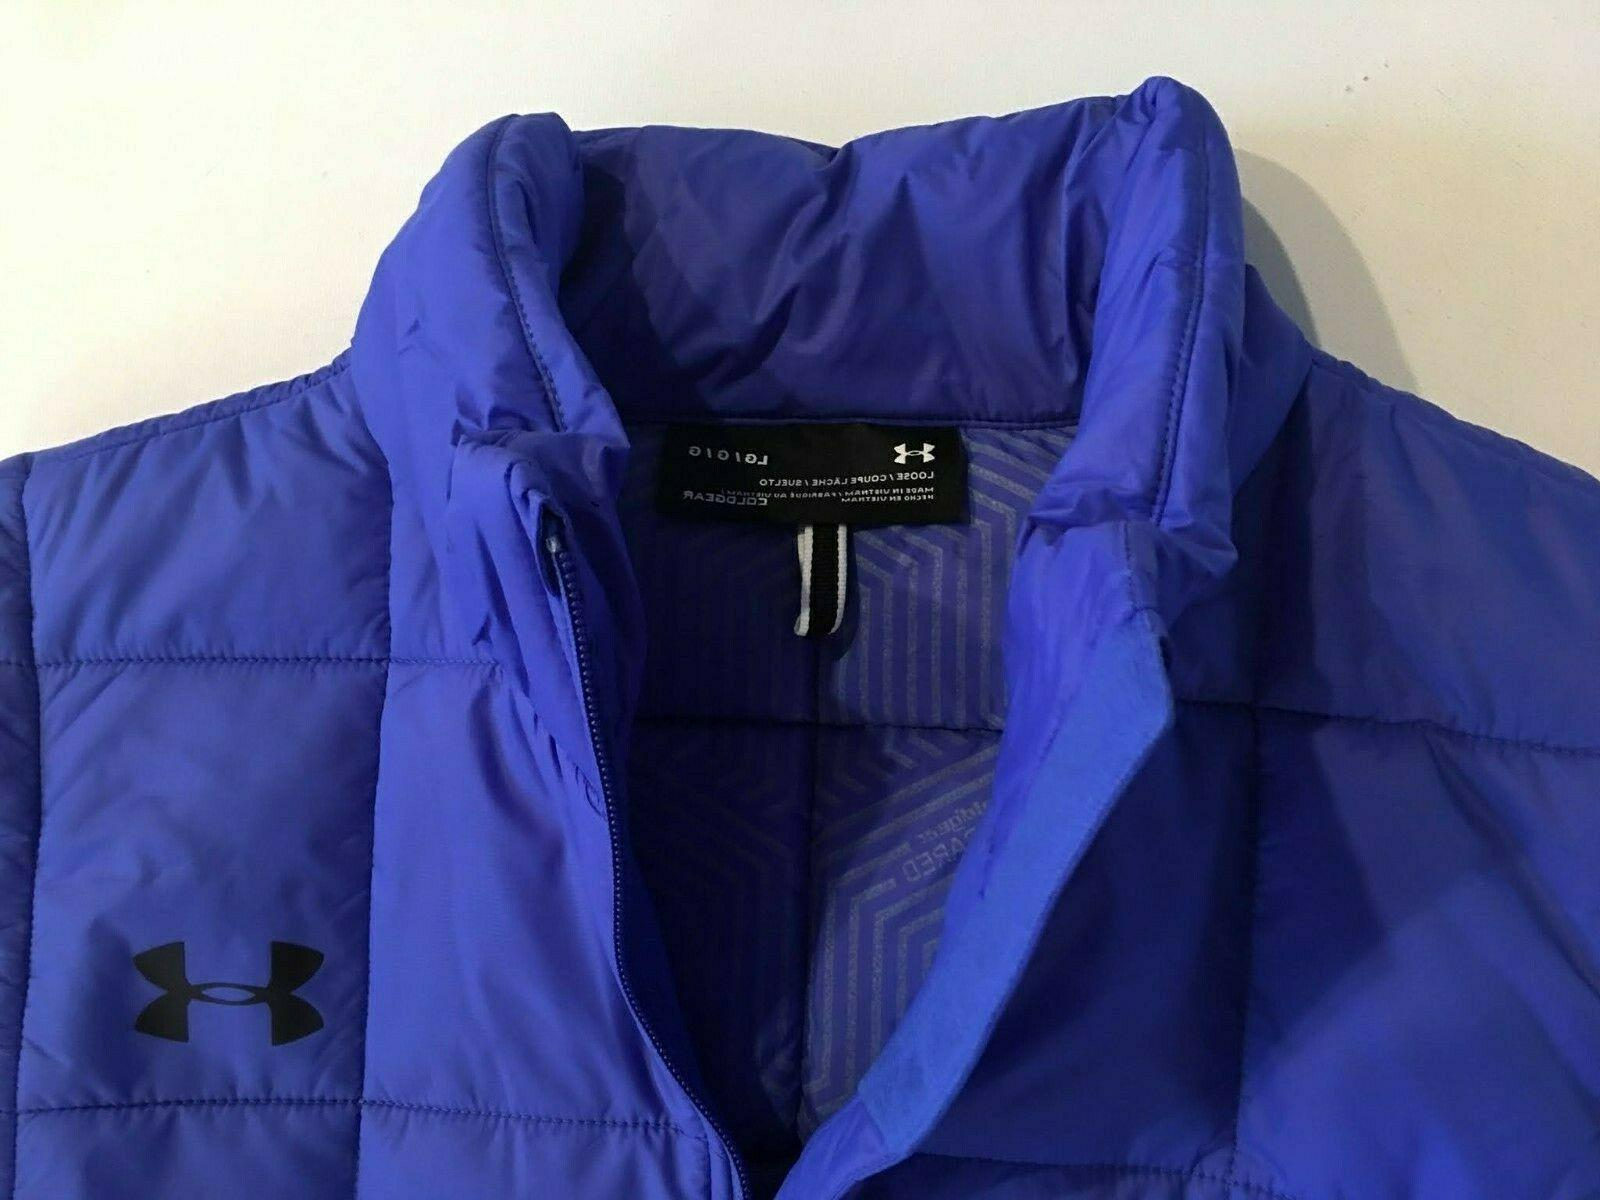 Under New Insulated Vest Large 1360551 $90